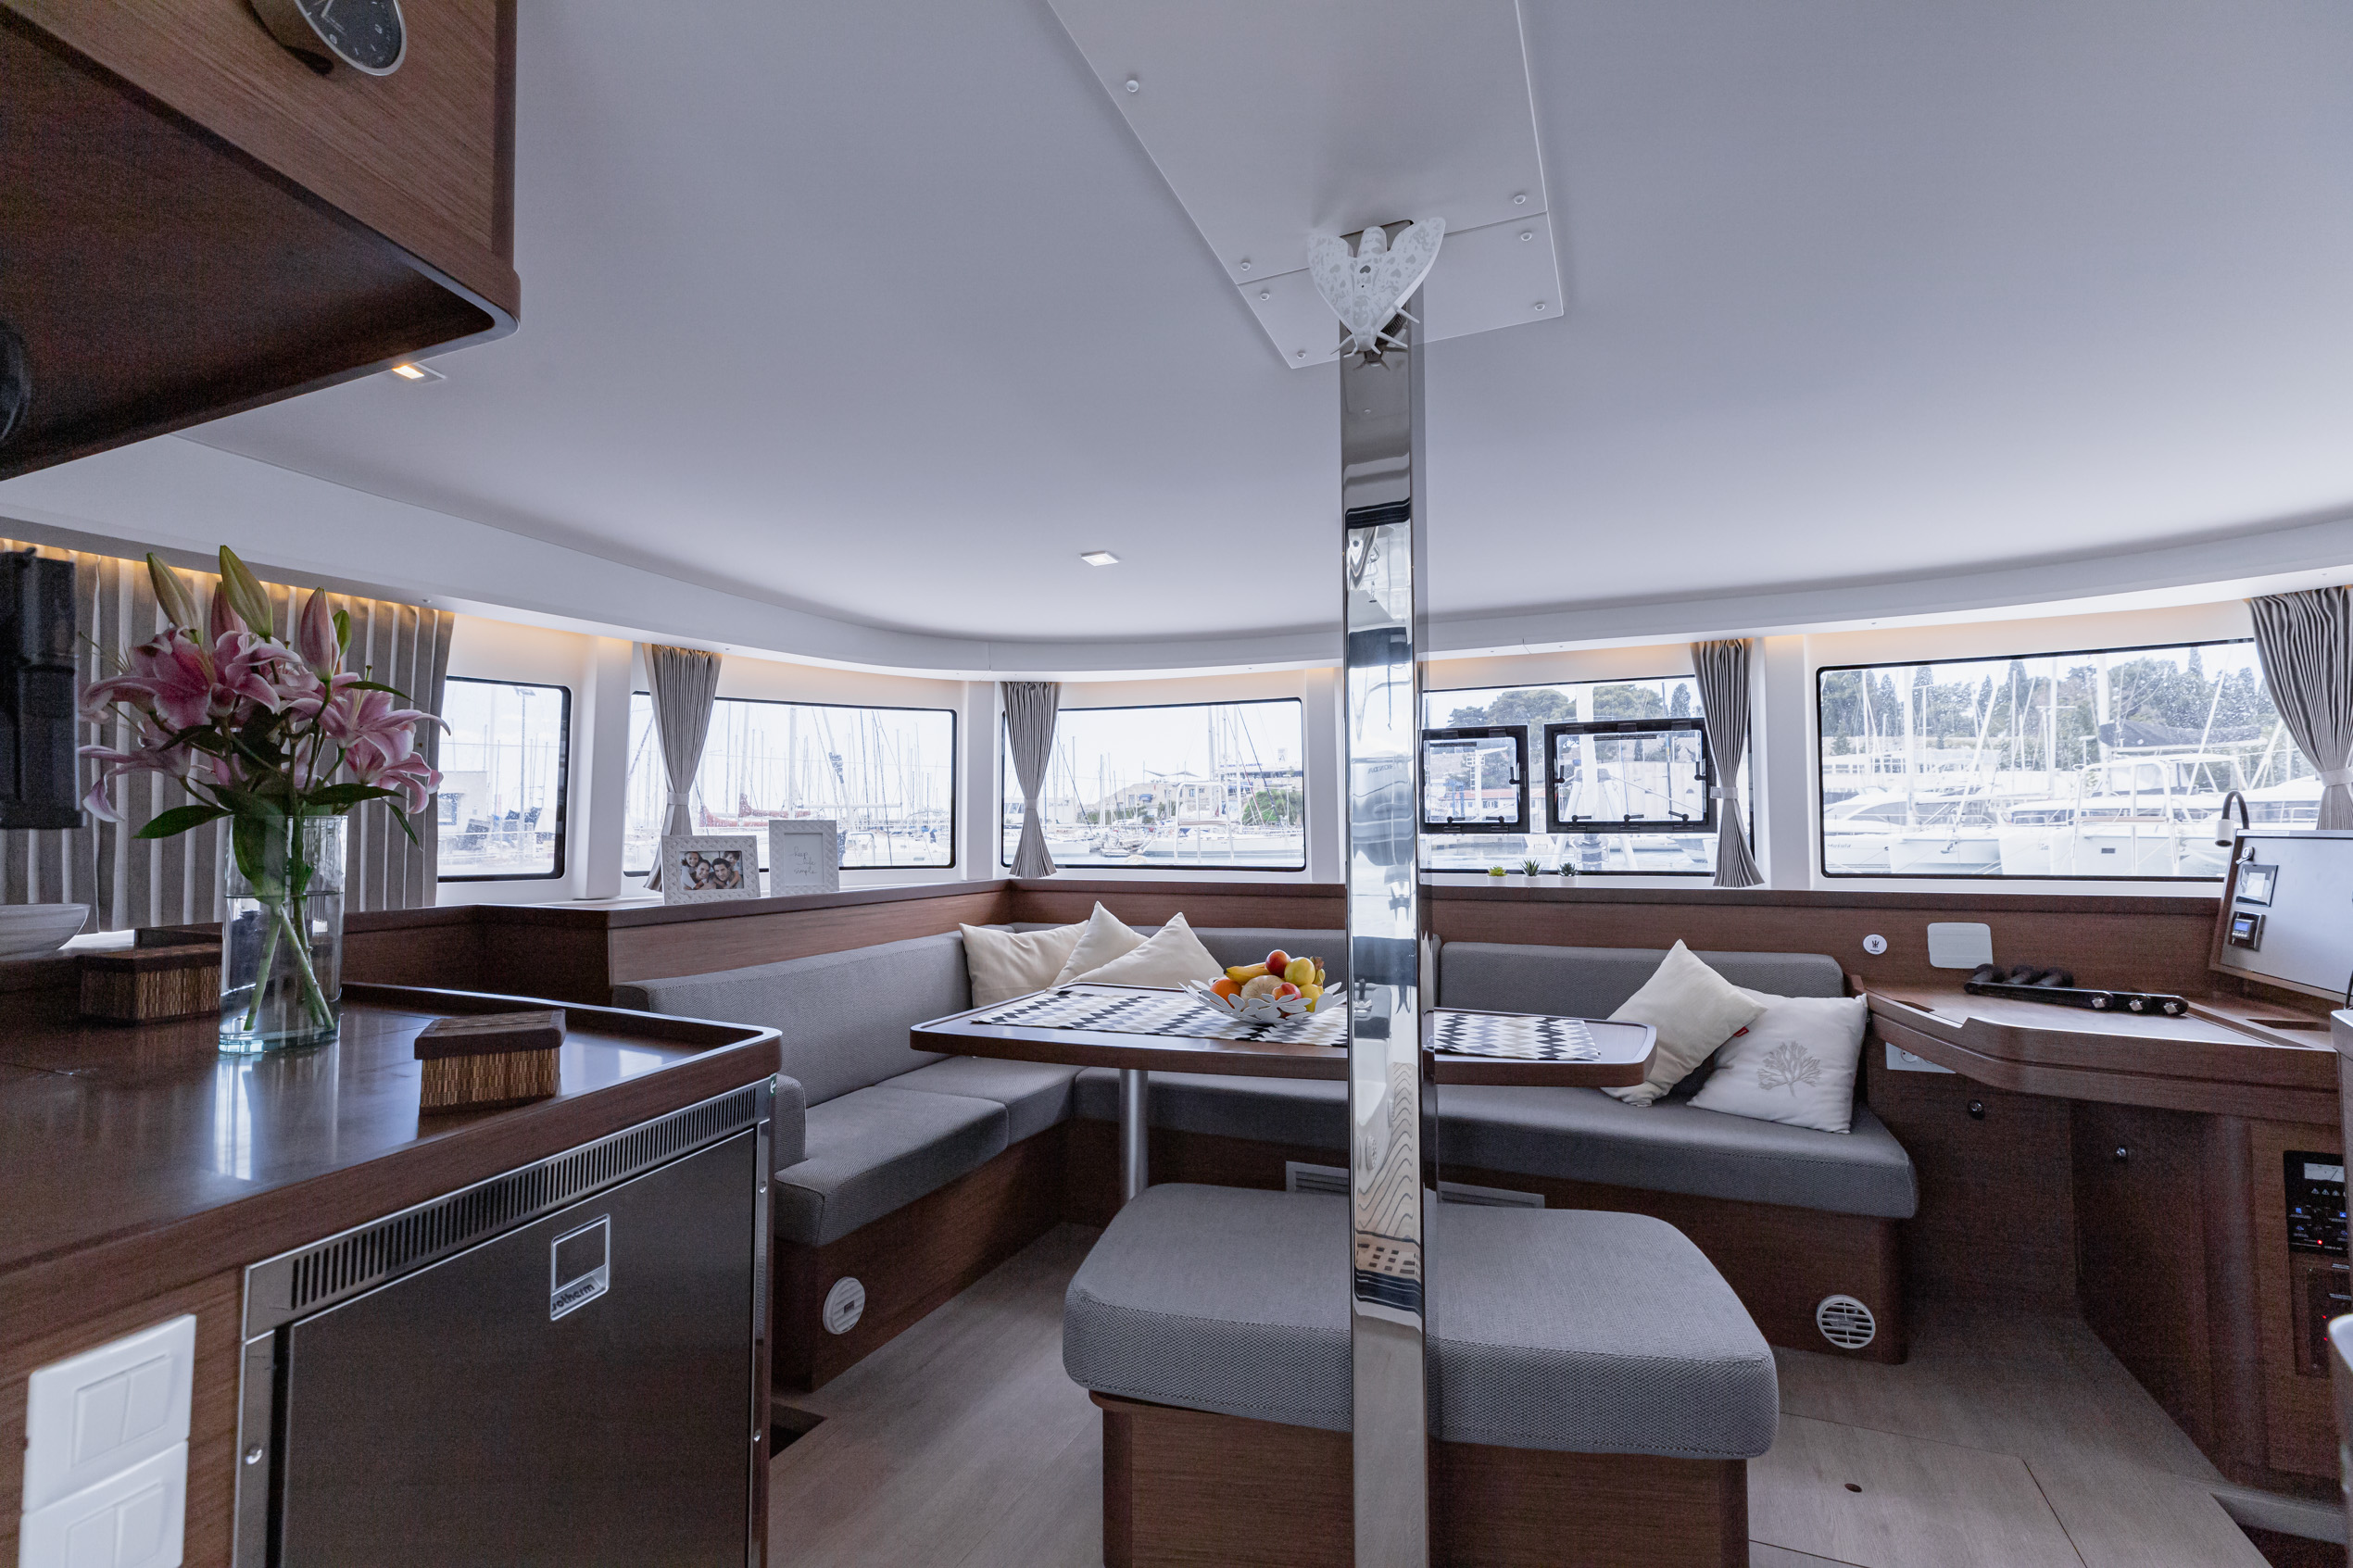 Lagoon 42 (2020) equipped with generator, A/C (sal (HAPPY KEY) Interior image - 10